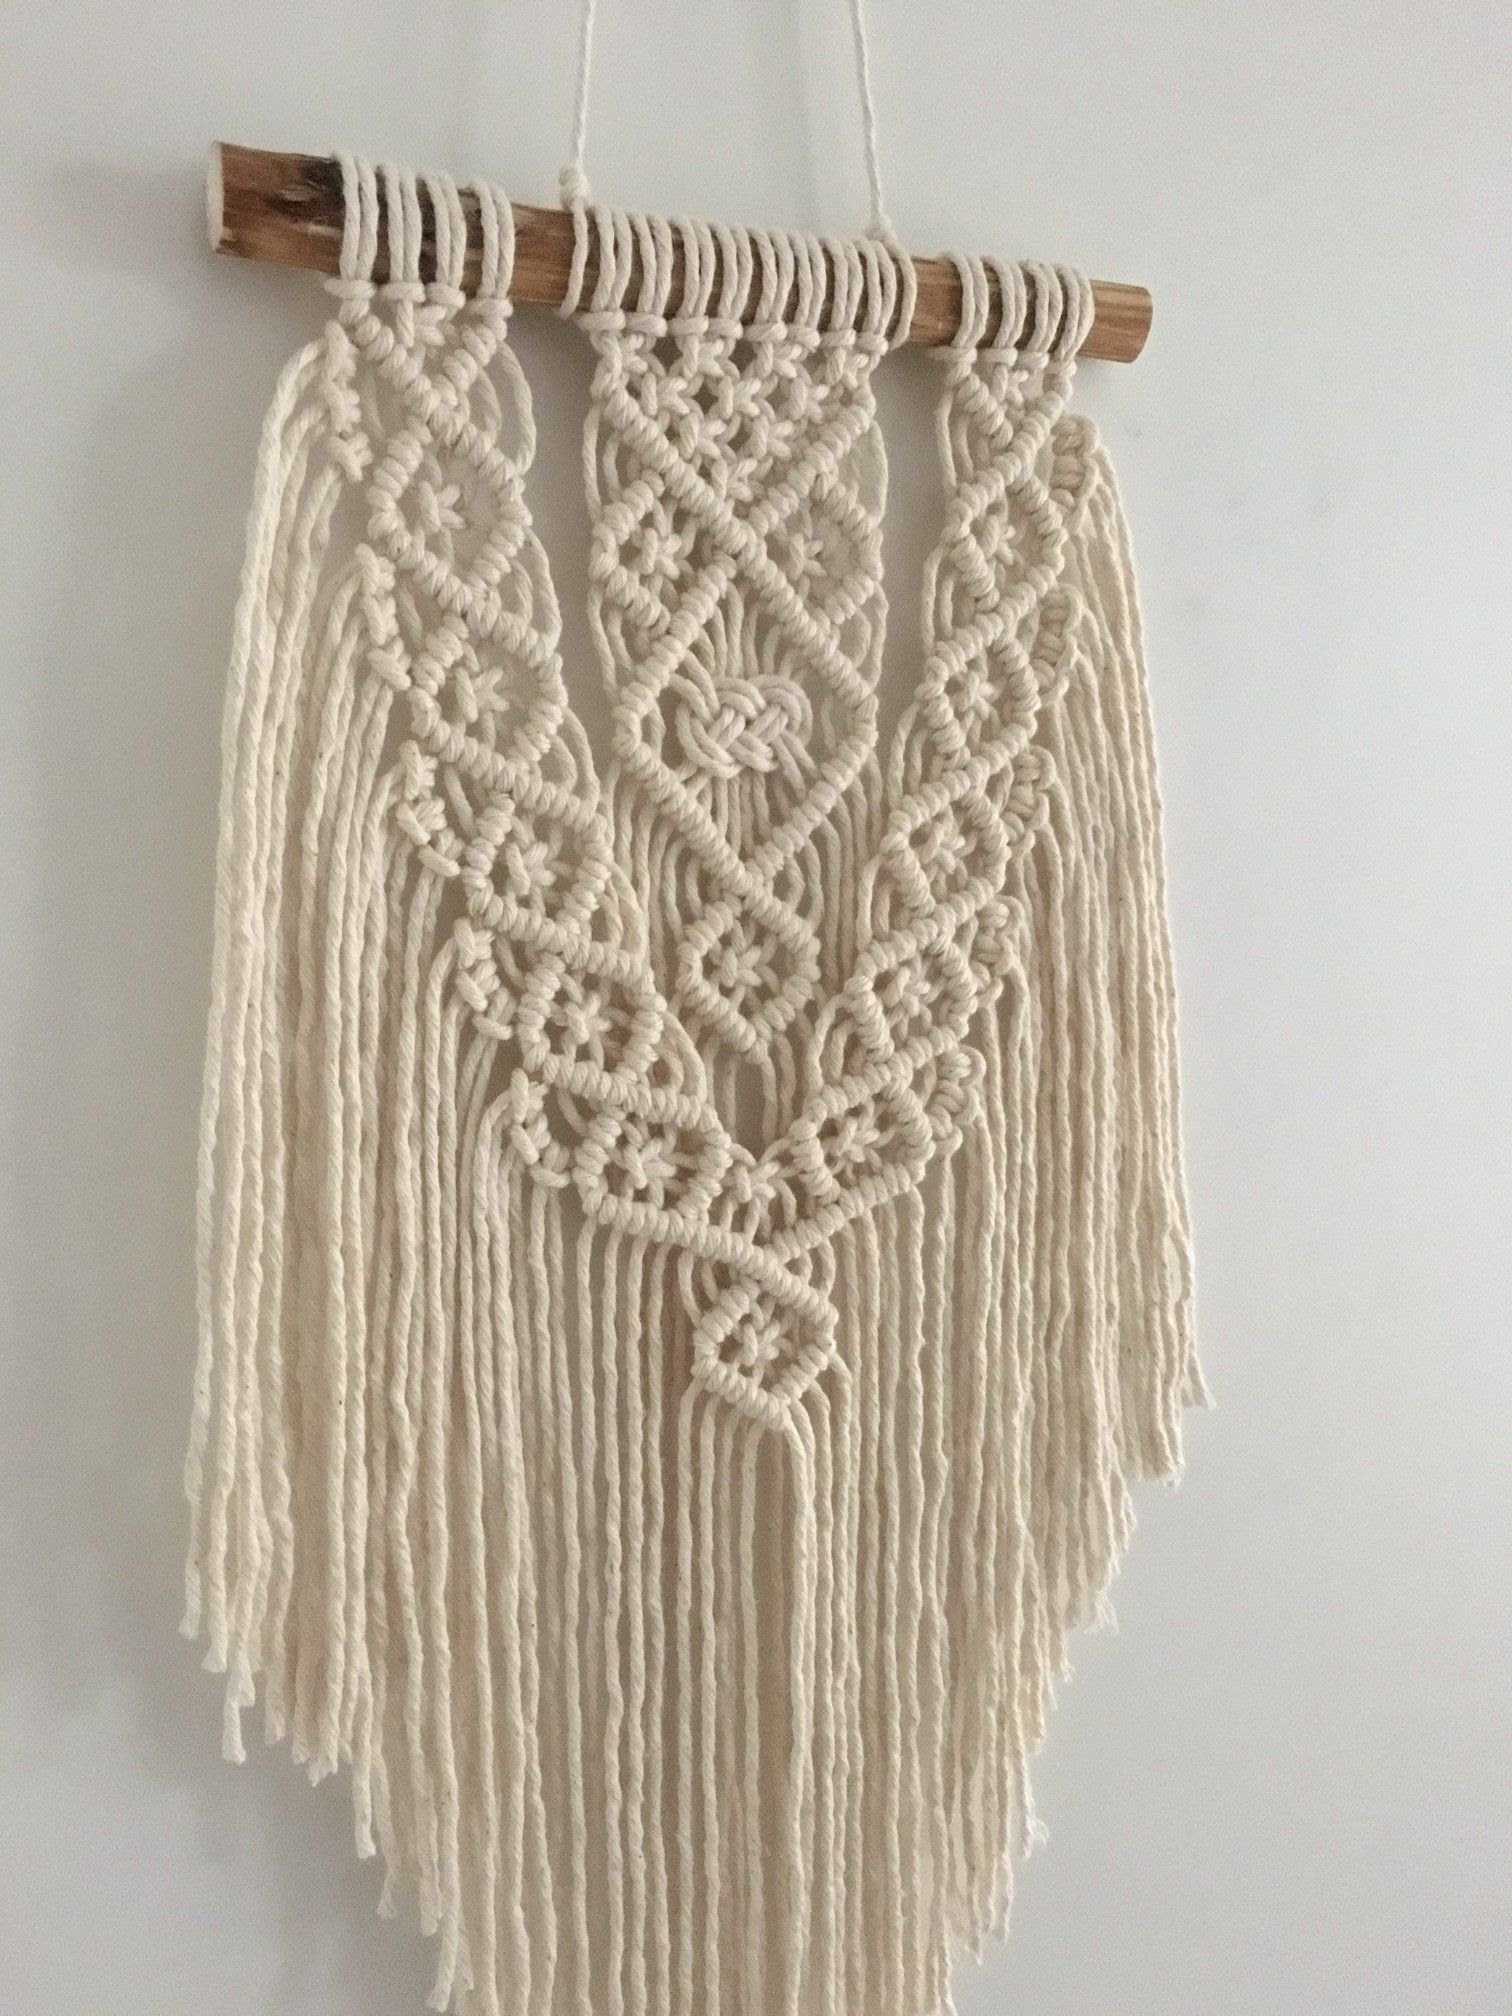 Macrame plantenhanger, mustard, wall planter, wall hanging, wall plant hanger, hanging planter, boho wall decor, plant holder, gift